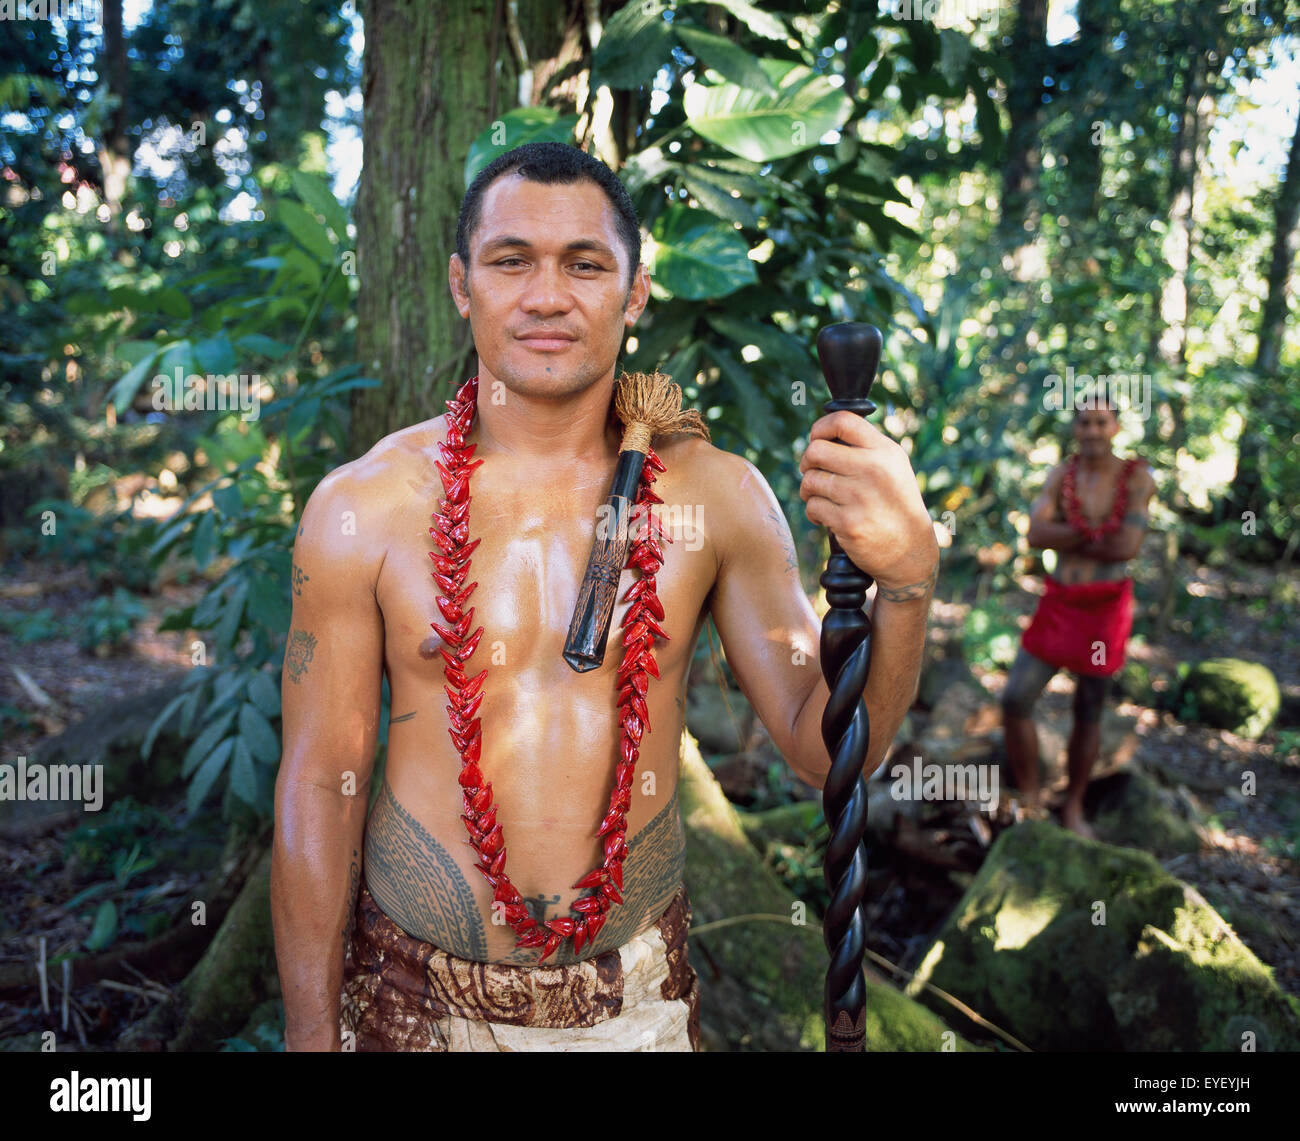 samoa single guys Free to join & browse - 1000's of men in samoa - interracial dating, relationships & marriage with guys & males online.